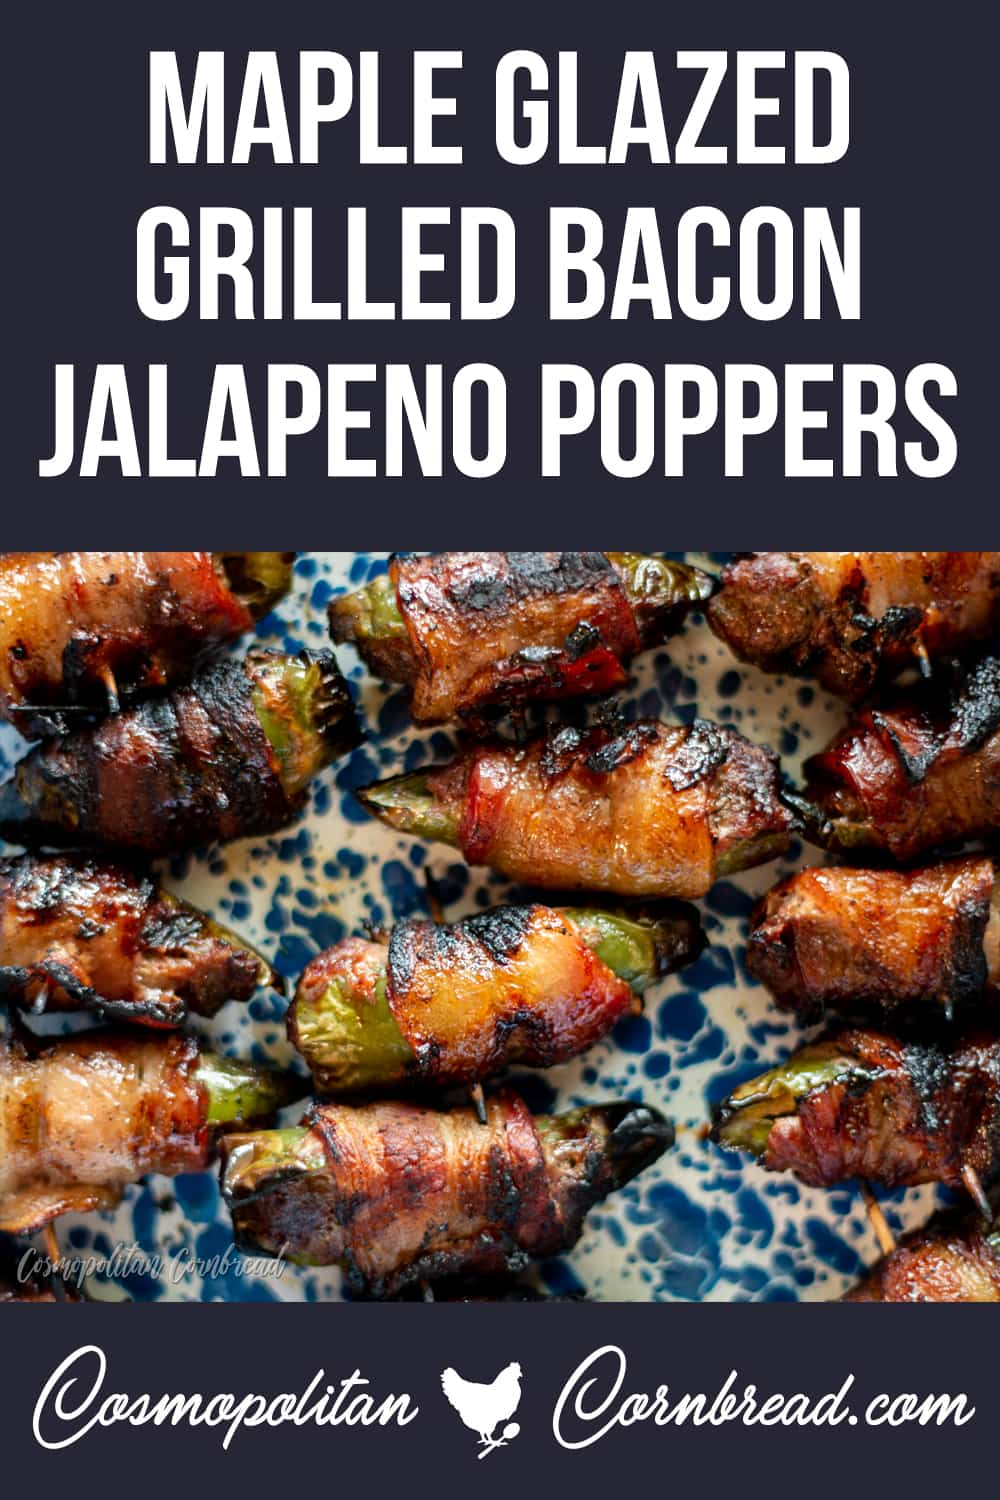 Maple Glazed Grilled Bacon Jalapeno Poppers - Flavorful jalapeno peppers, stuffed with seasoned meat, wrapped in bacon, grilled and glazed with maple. You will seriously not be able to stop eating these!